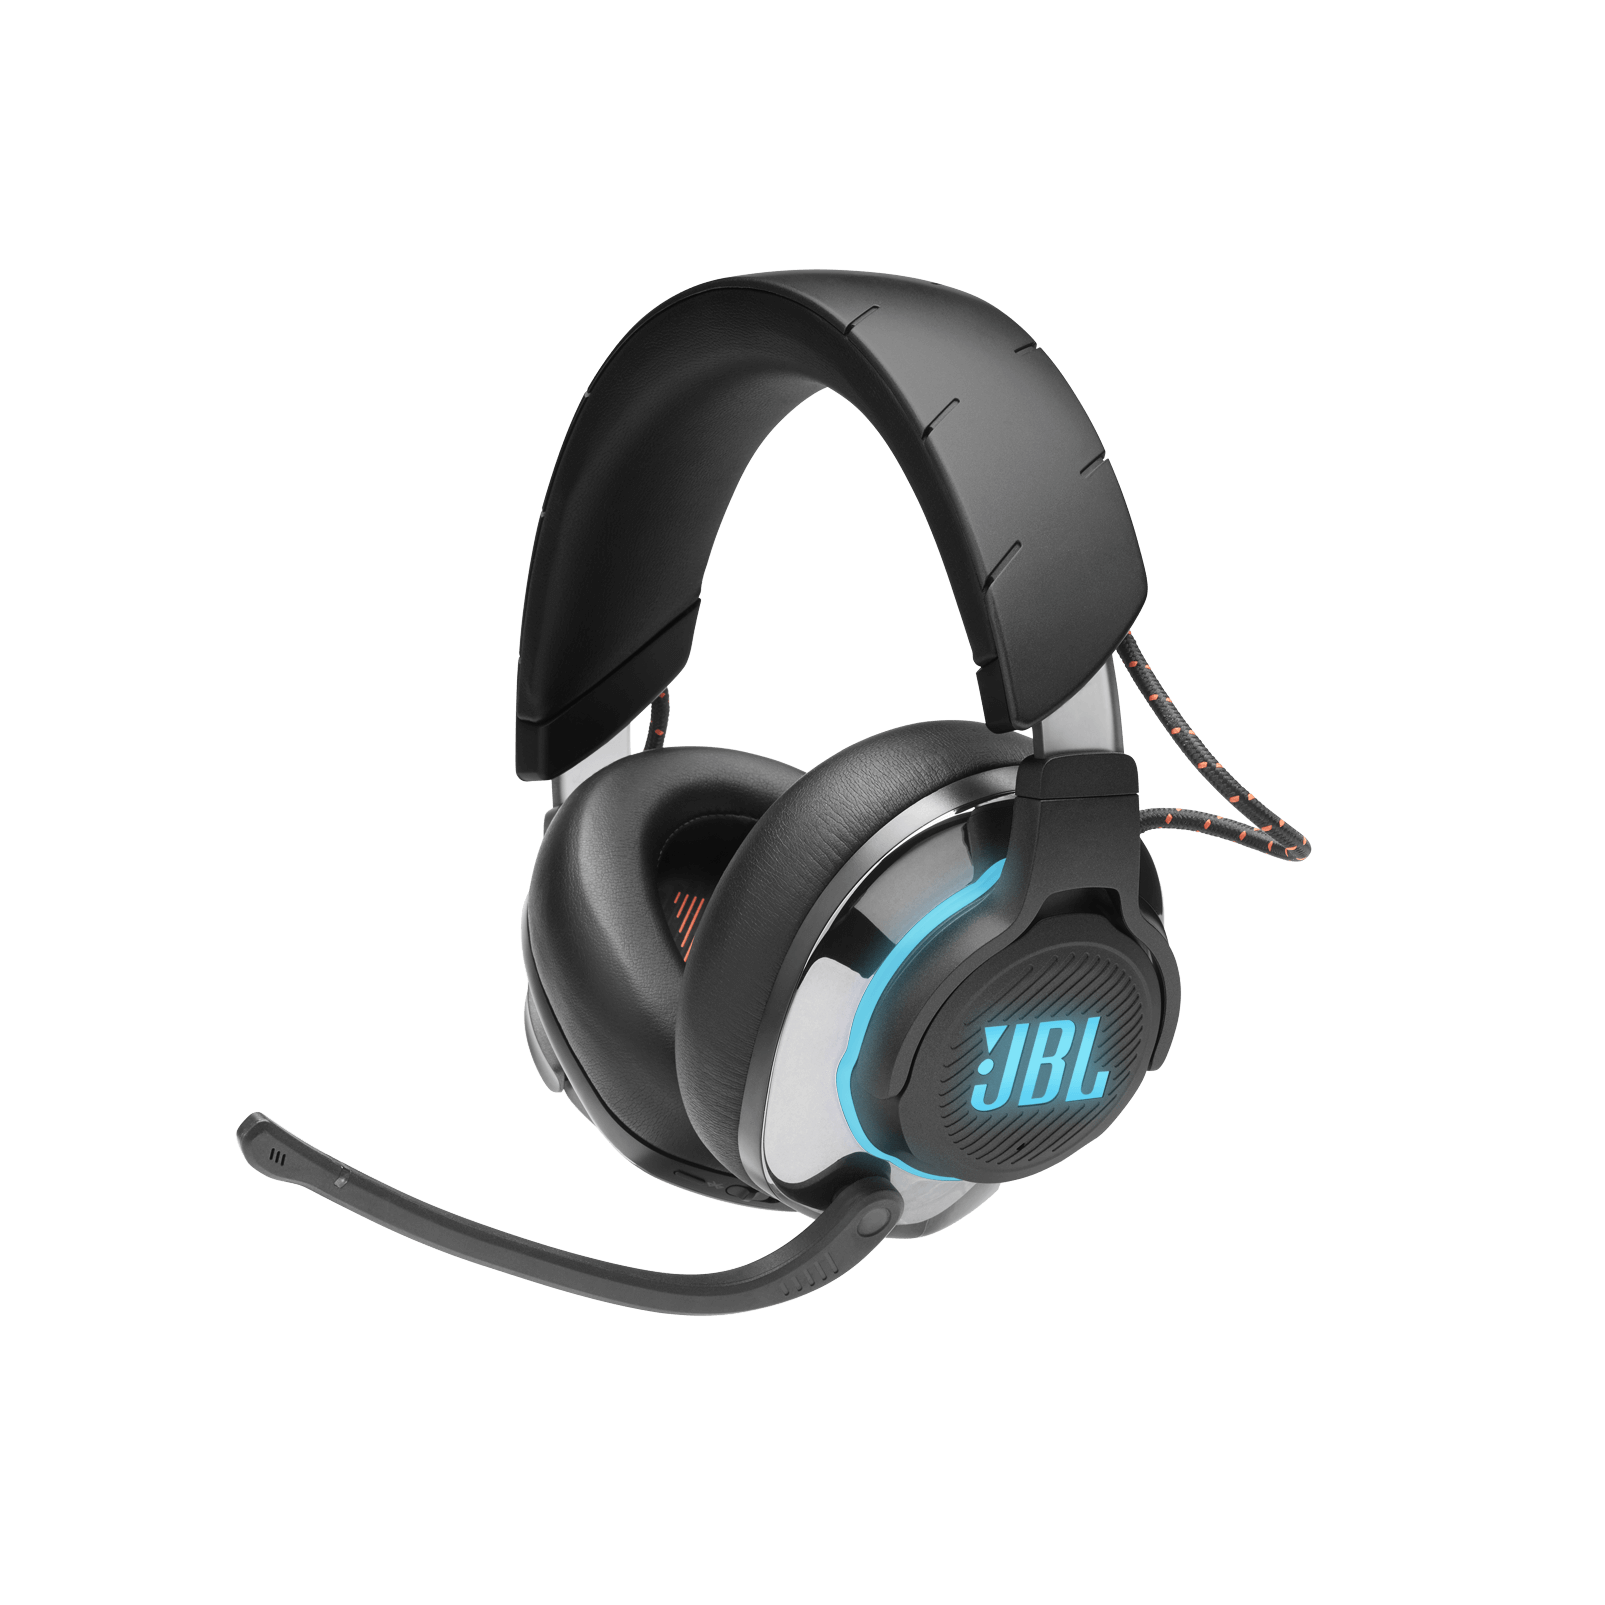 JBL - Casque de jeu circum-aural haute performance à réduction de bruit active et Bluetooth 5.0 - JBLQUANTUM800BLKAM